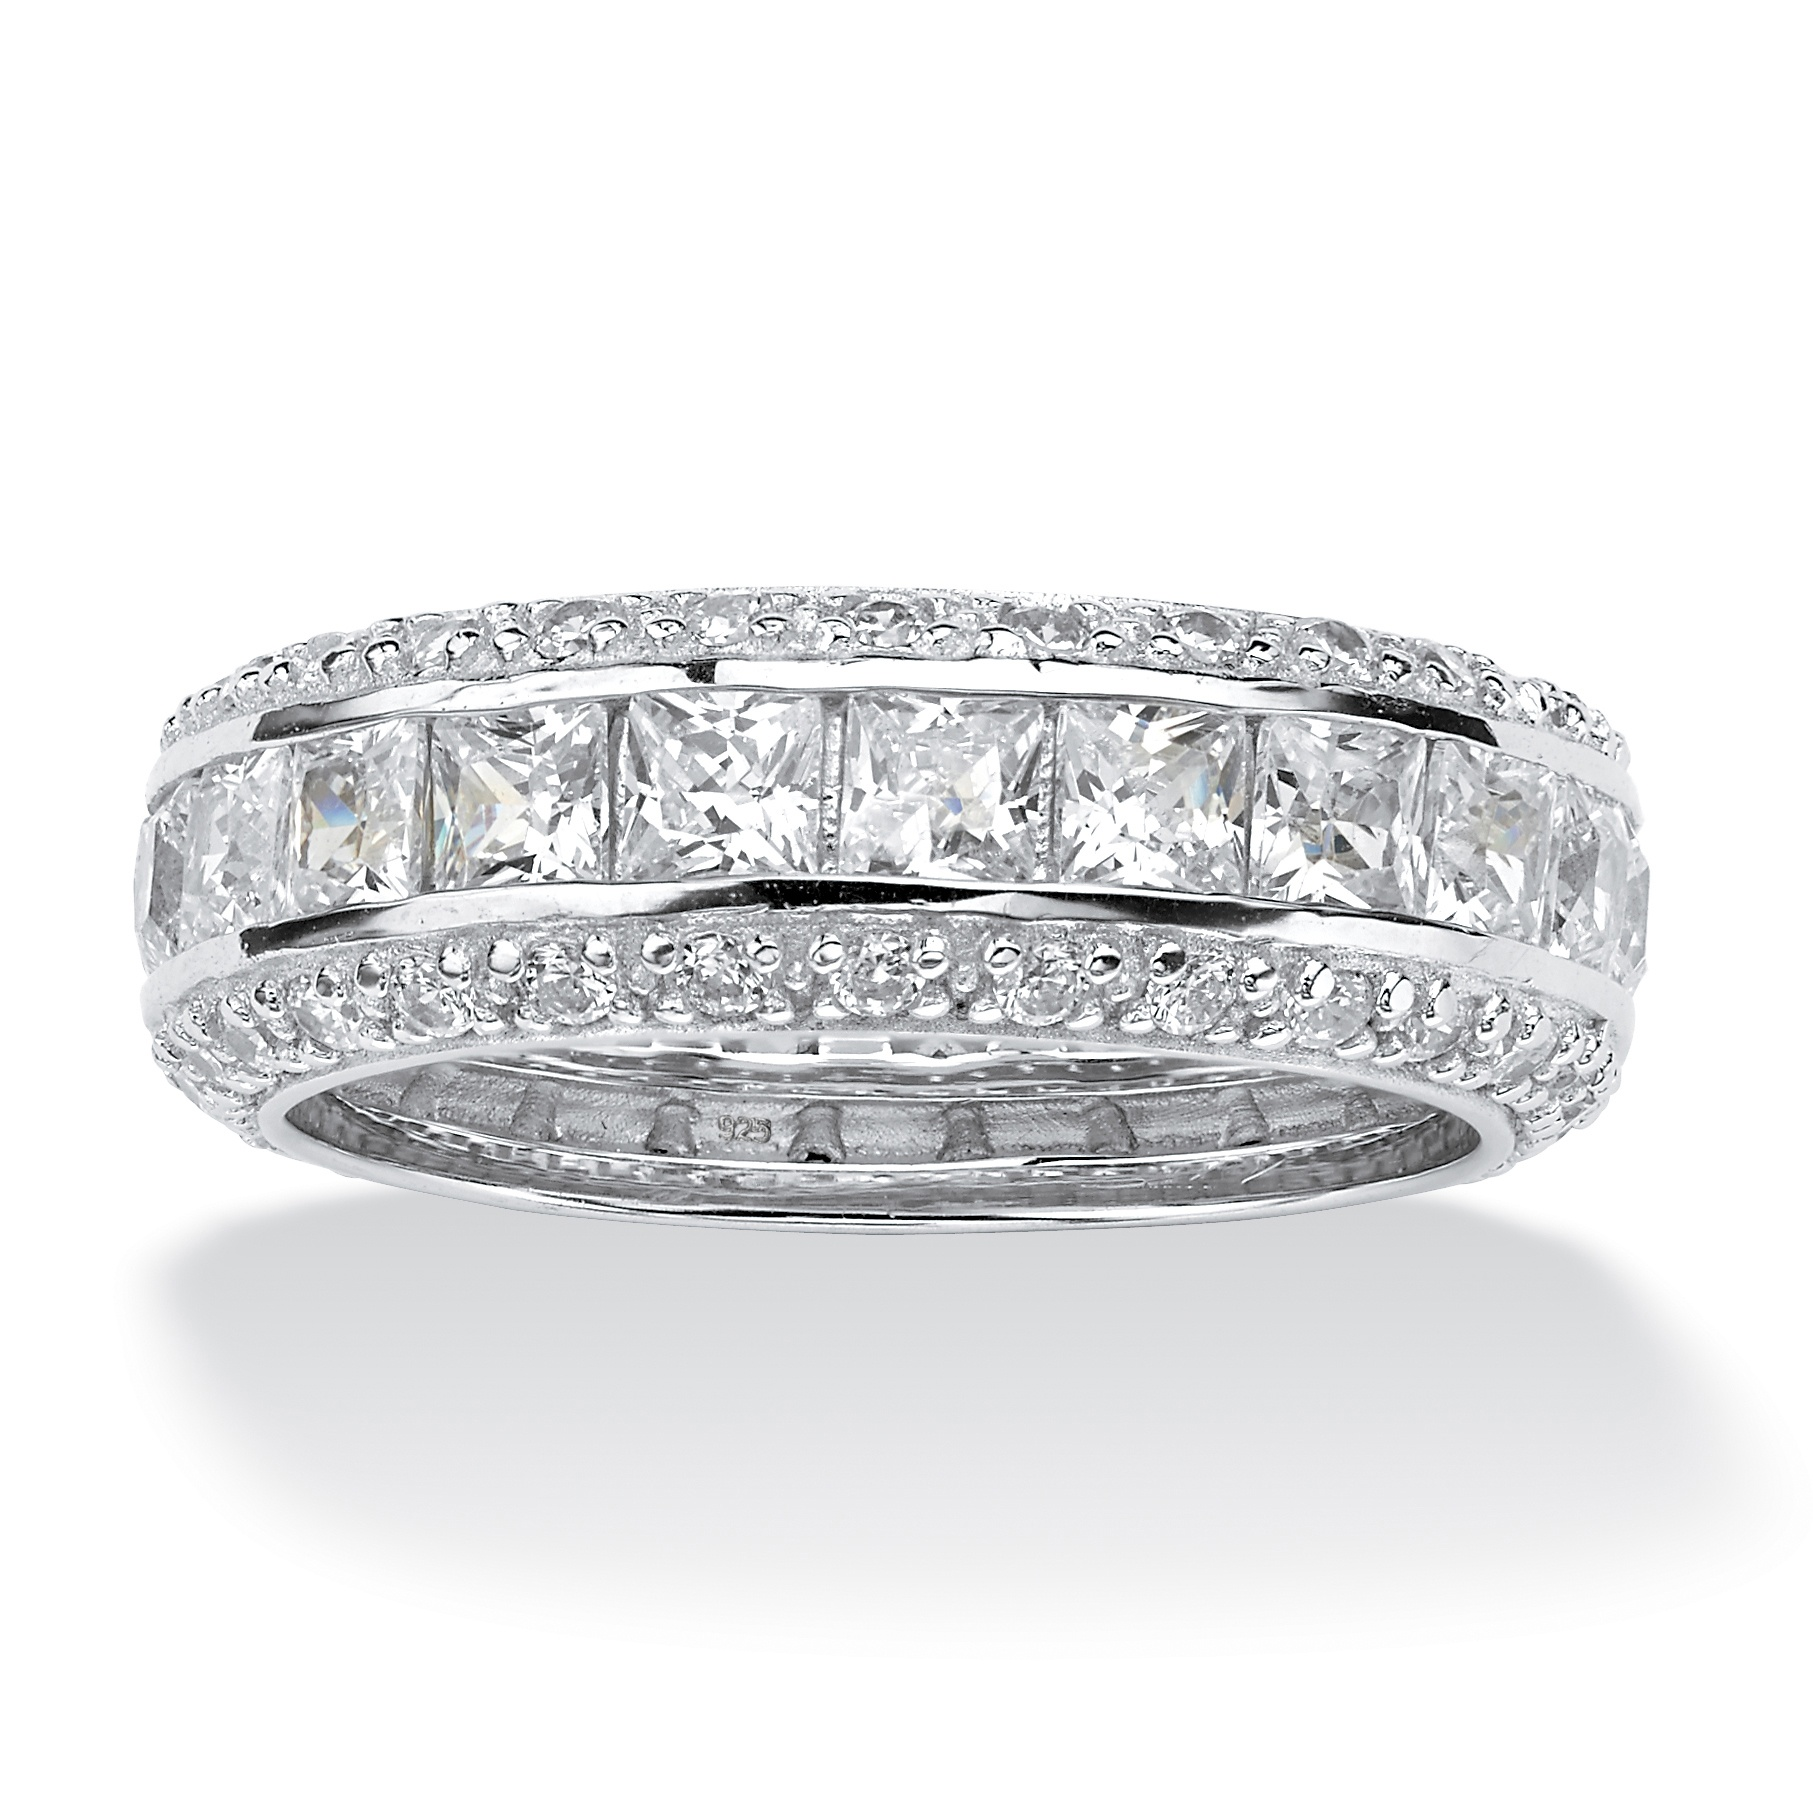 4 17 Tcw Princess Cut Cz Eternity Ring In Platinum Over